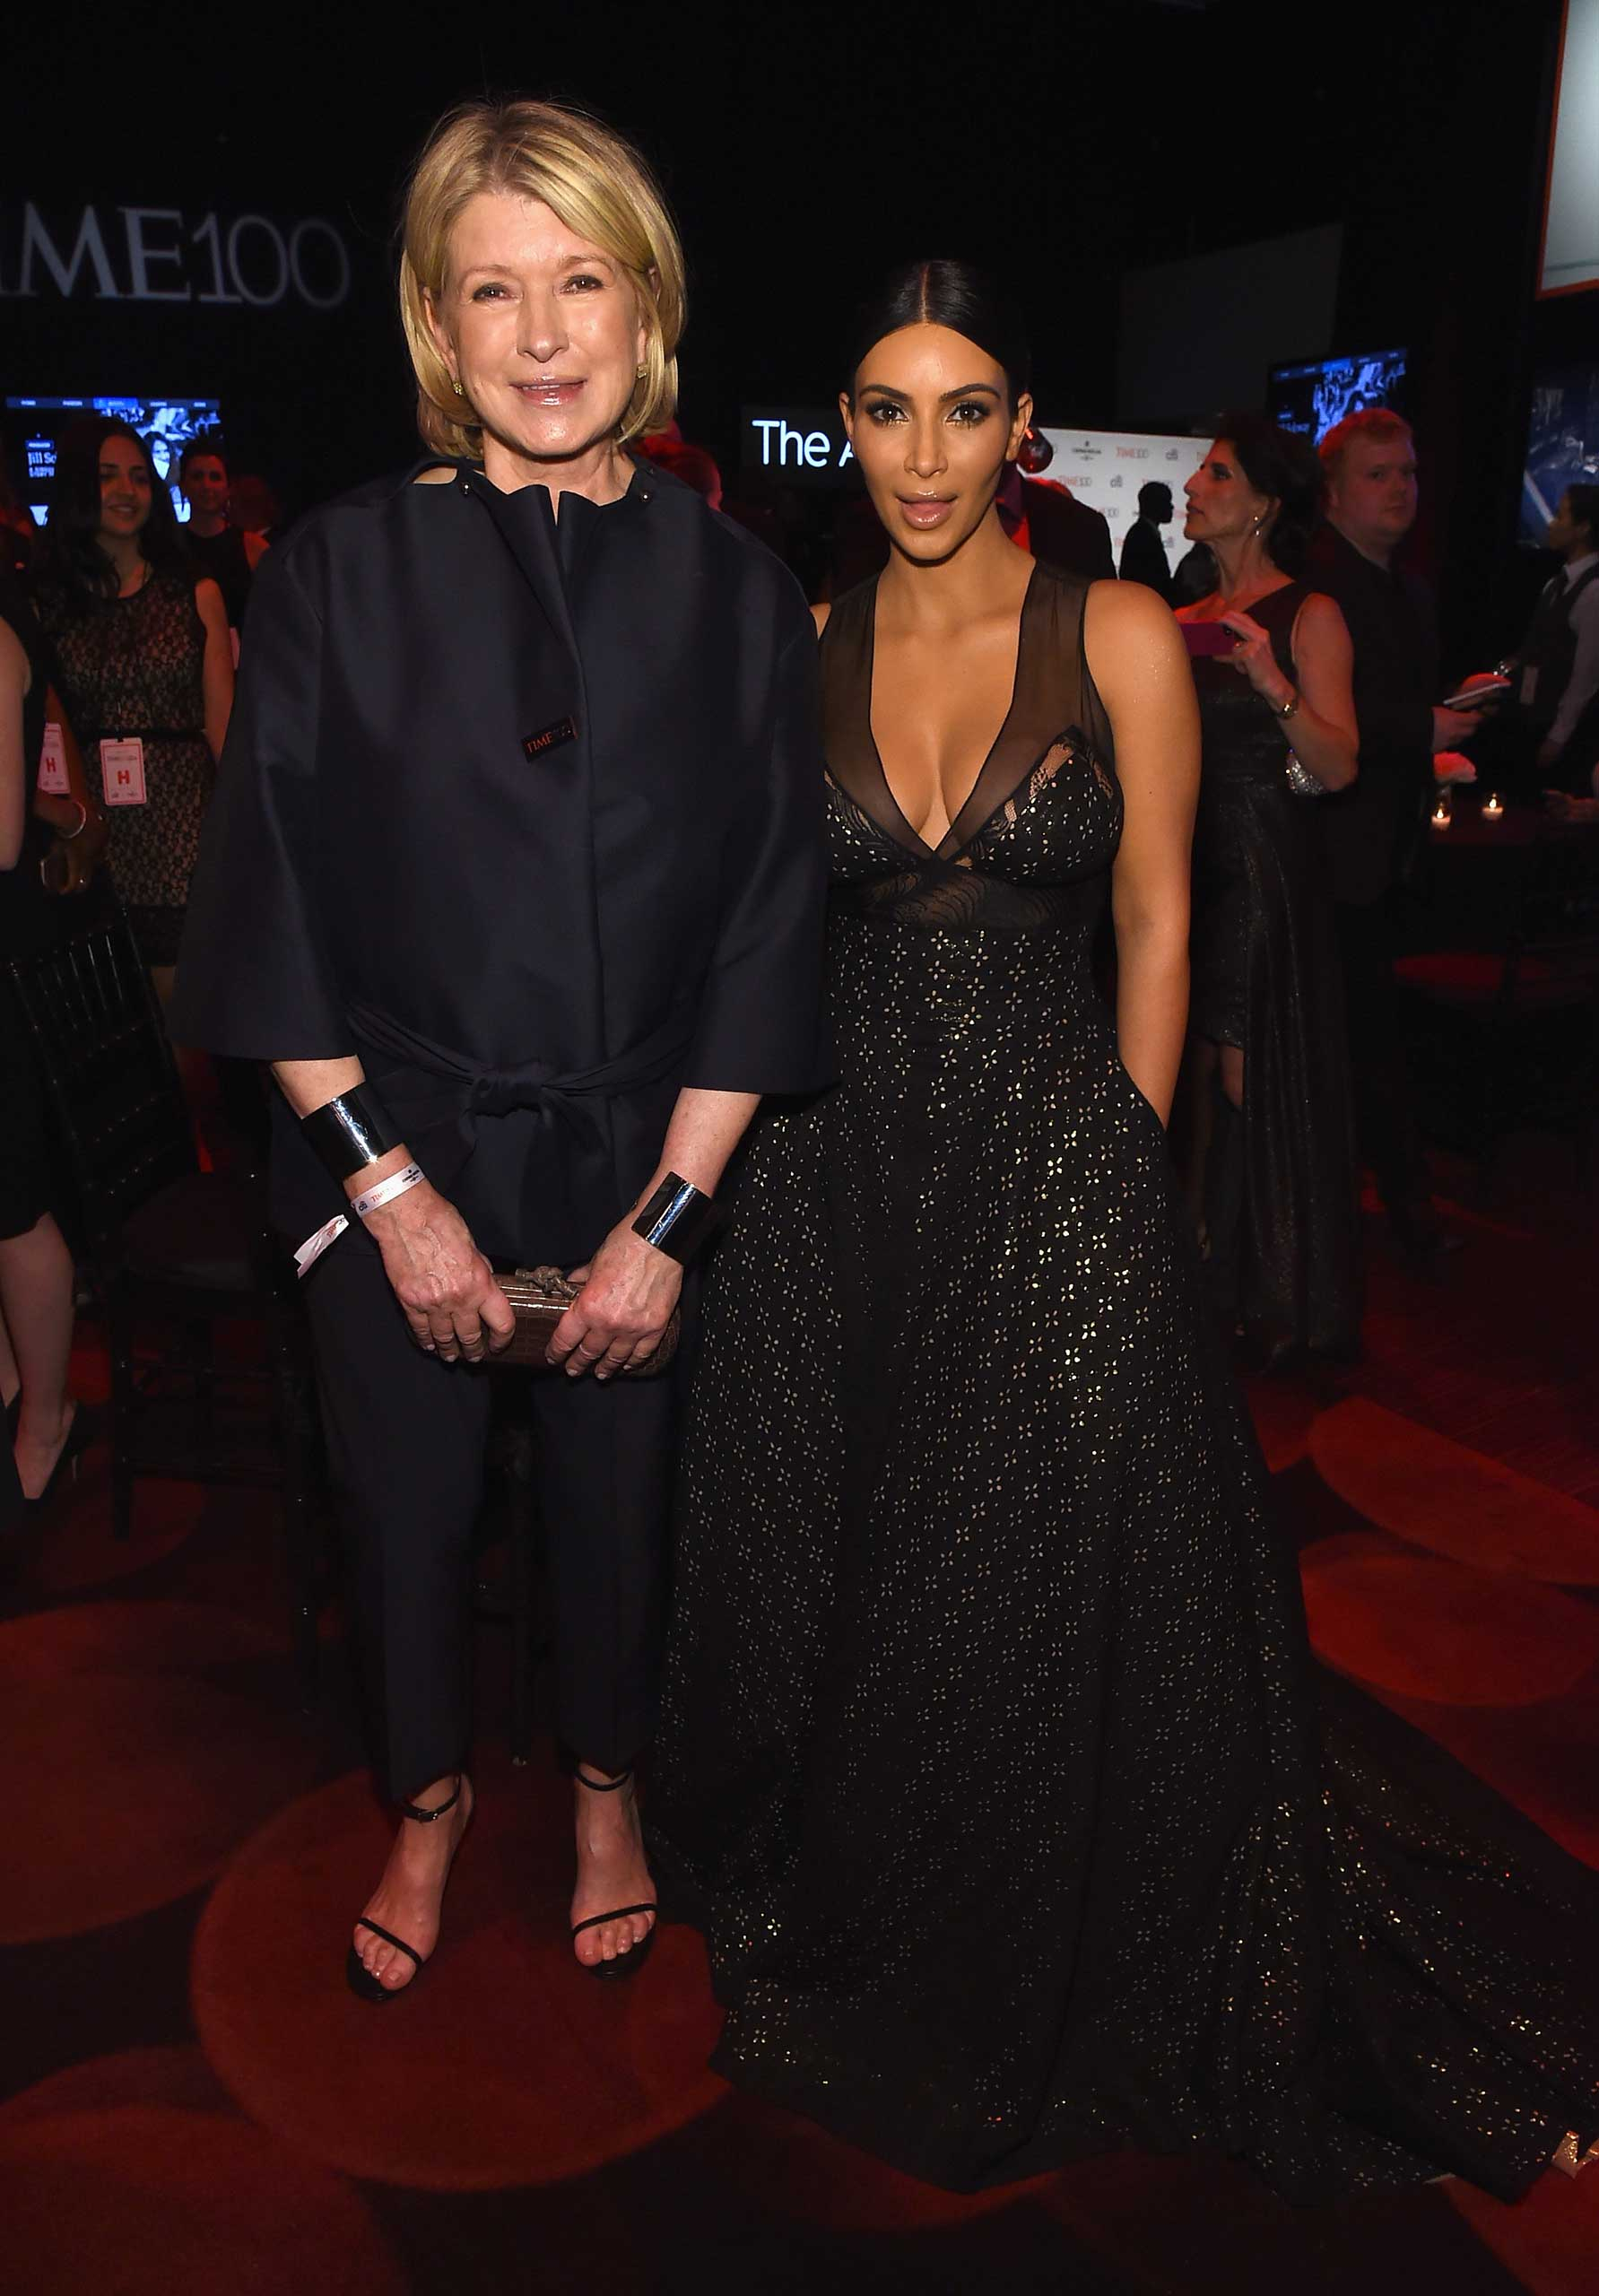 Martha Stewart and Kim Kardashian West attend the TIME 100 Gala at Jazz at Lincoln Center in New York City on Apr. 21, 2015.